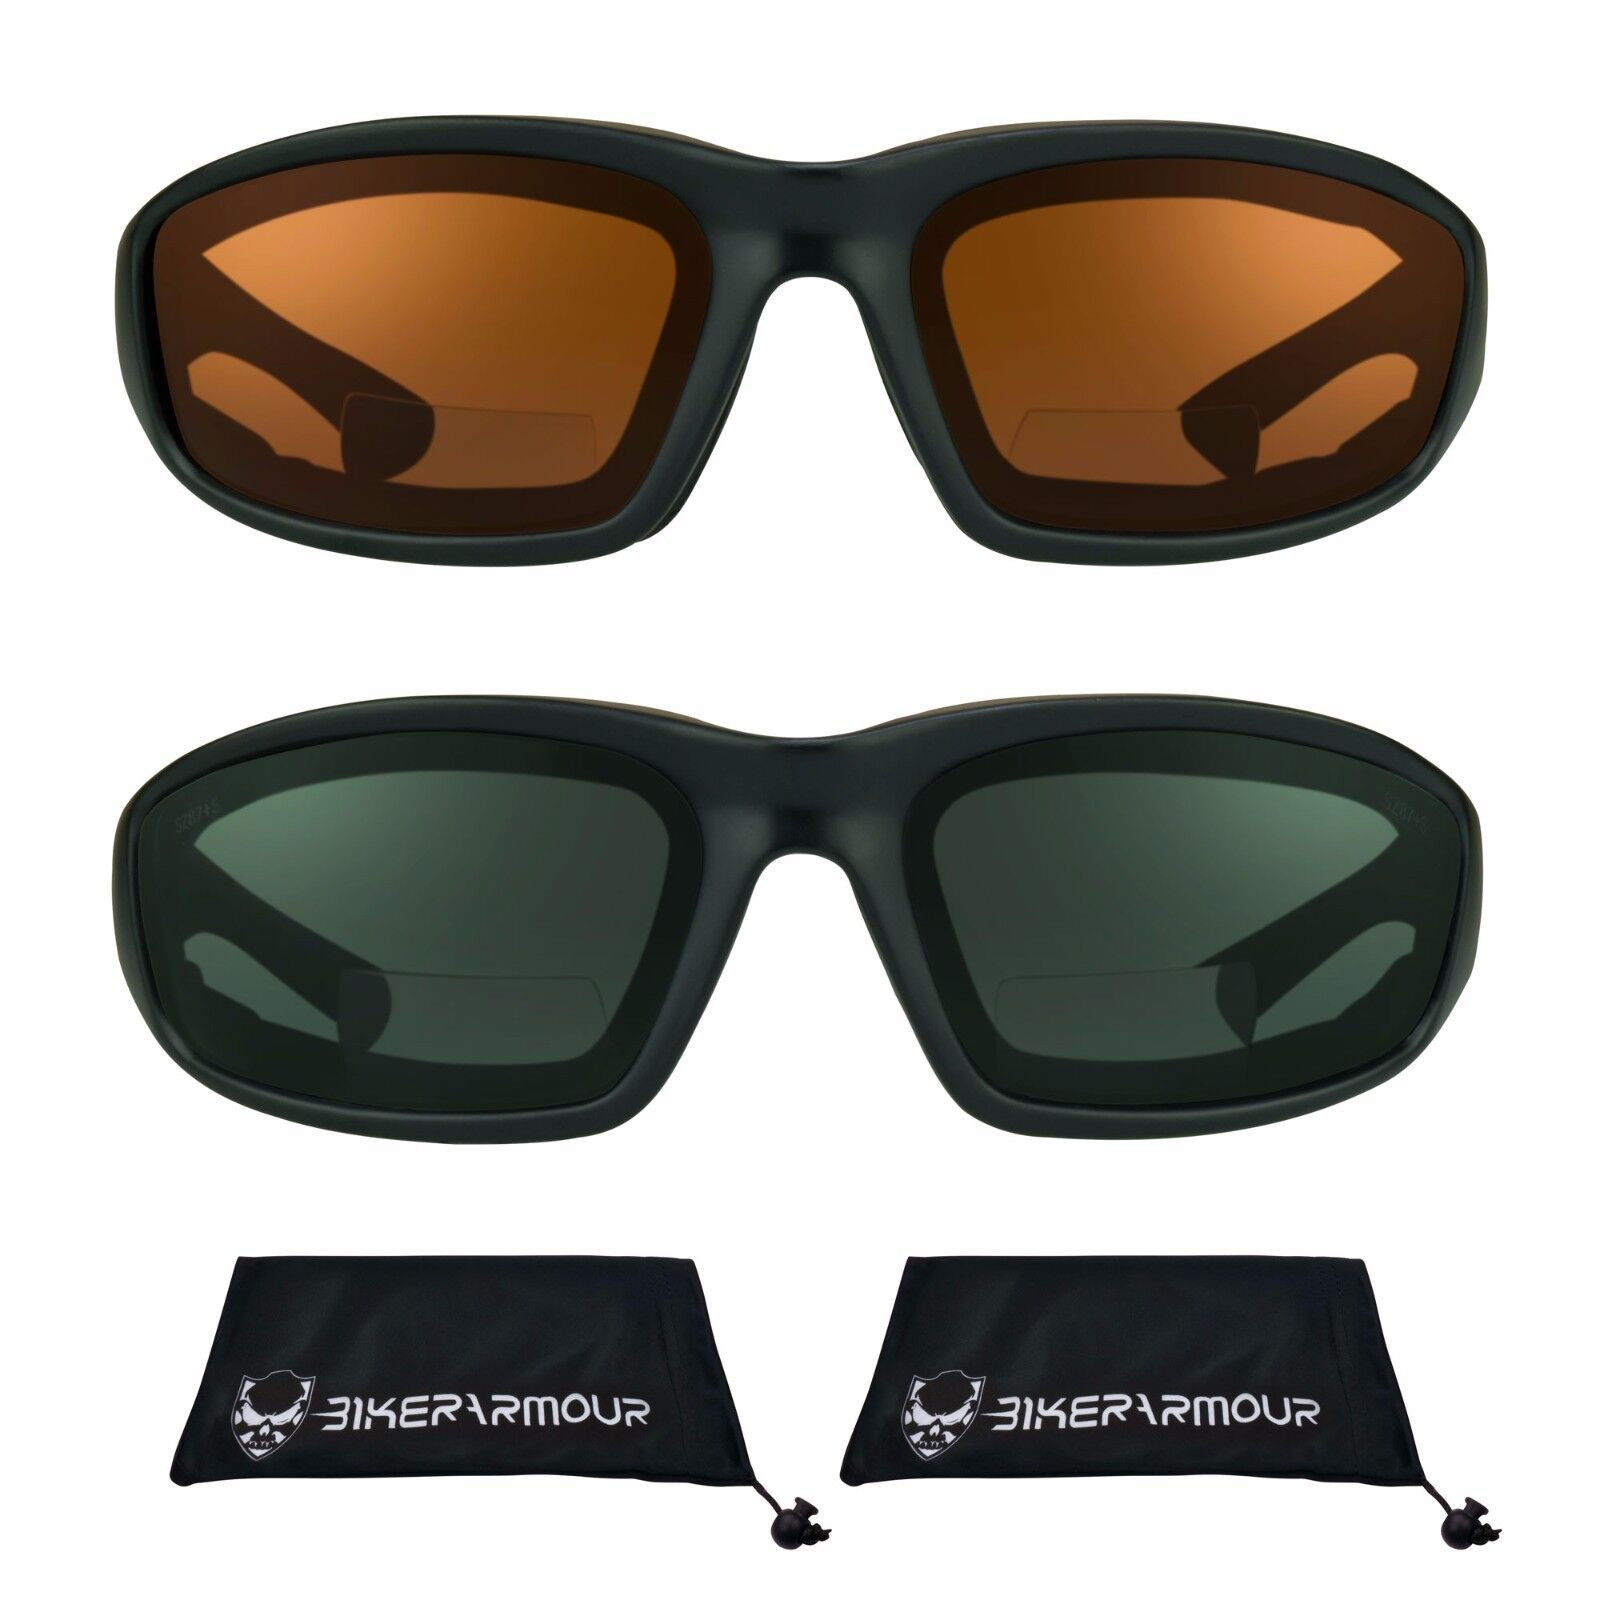 Bikershades Motorcycle Bifocal Sunglasses Reader 1.00 Foam Padded Wind Proof ANSI Z87 for Smaller Head Sizes